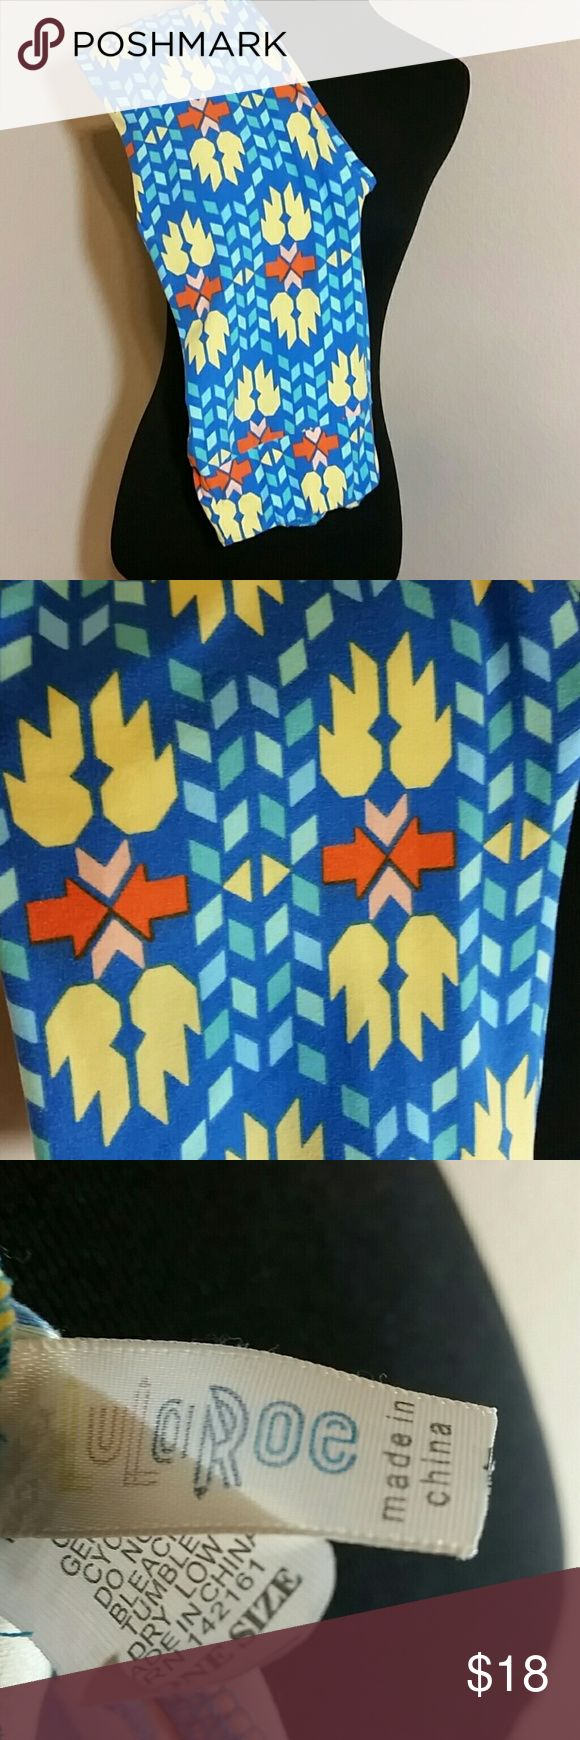 Lularoe One Sz Leggings GUC Aztec like Pattern Women's Lularoe One Sz Leggings. Elastic waistline, Aztec like Pattern. Overall good condition.  These are GUC so some minor color fade. There is no ball pilling between thigh areas. LuLaRoe Pants Leggings